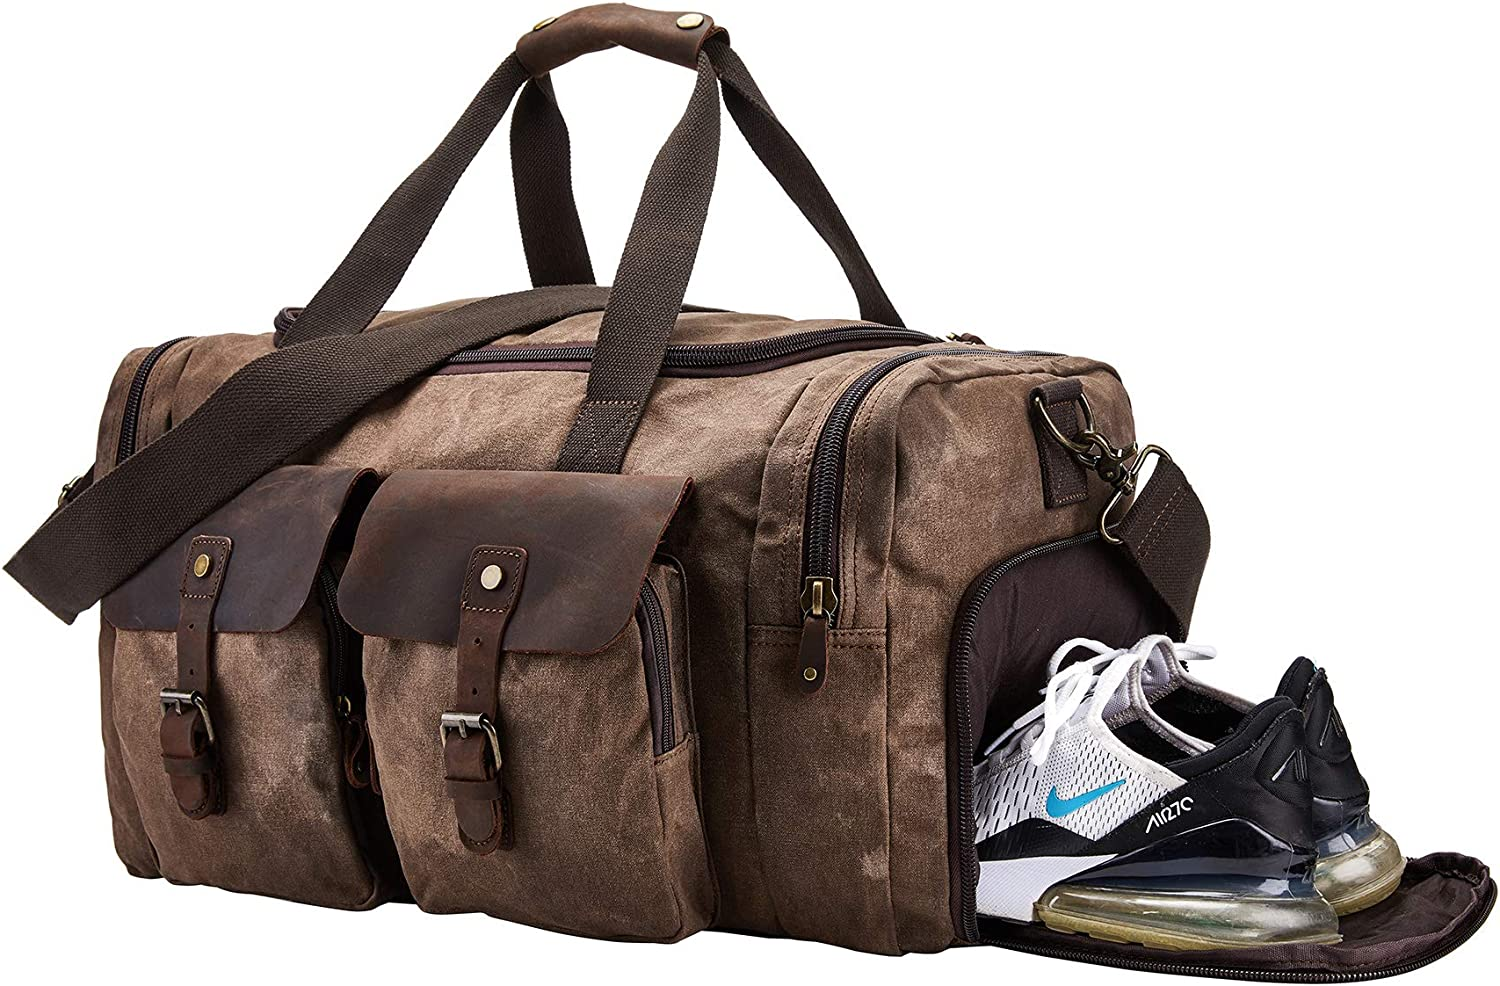 BRASS TACKS Leathercraft Men s Waxed Canvas Vintage Overnight Duffel Weekend Bag with Shoes Compartment Dark Brown